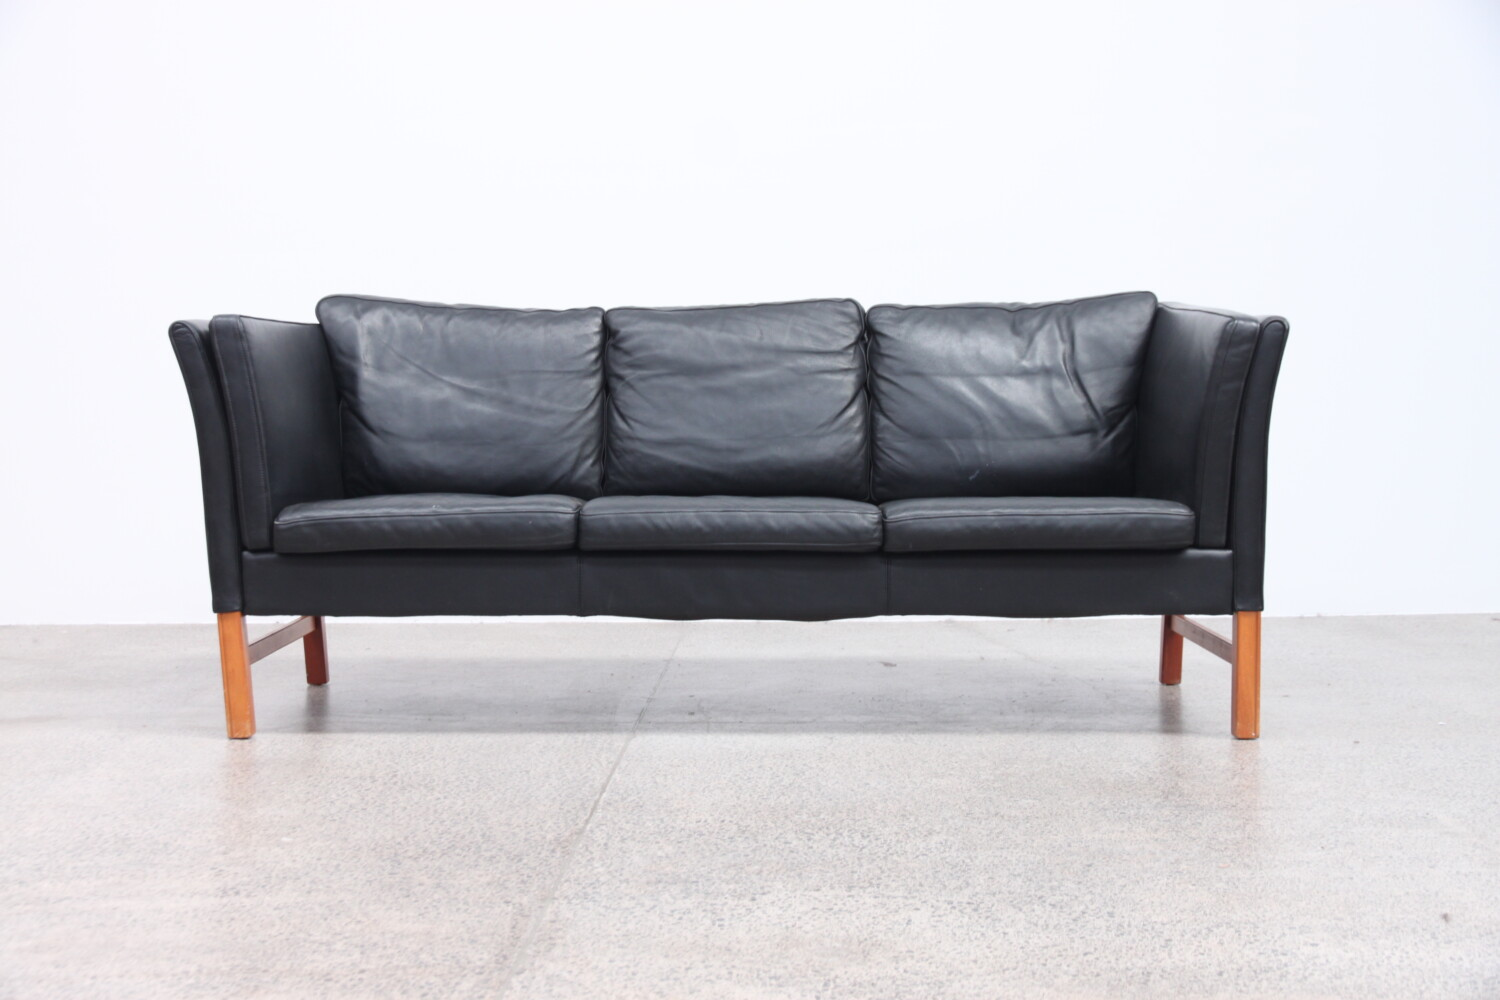 Pair of Sofas by Skipper Mobler sold